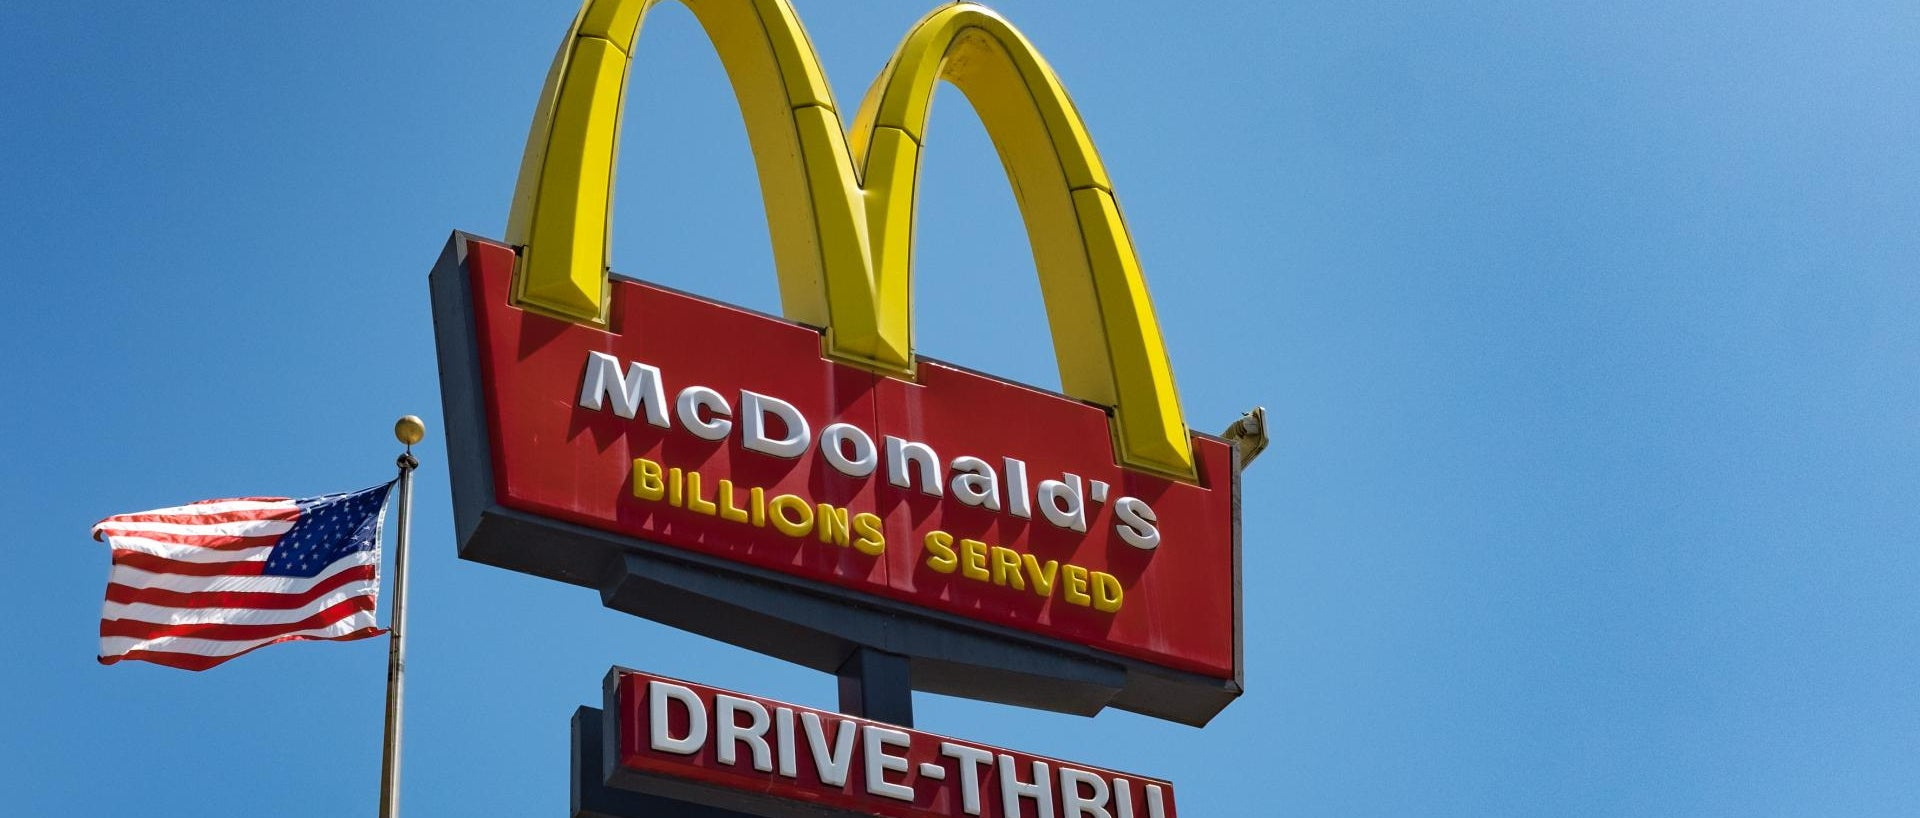 McDonald's US reported a 5.5% growth in sales in the fourth quarter, CNN reported.